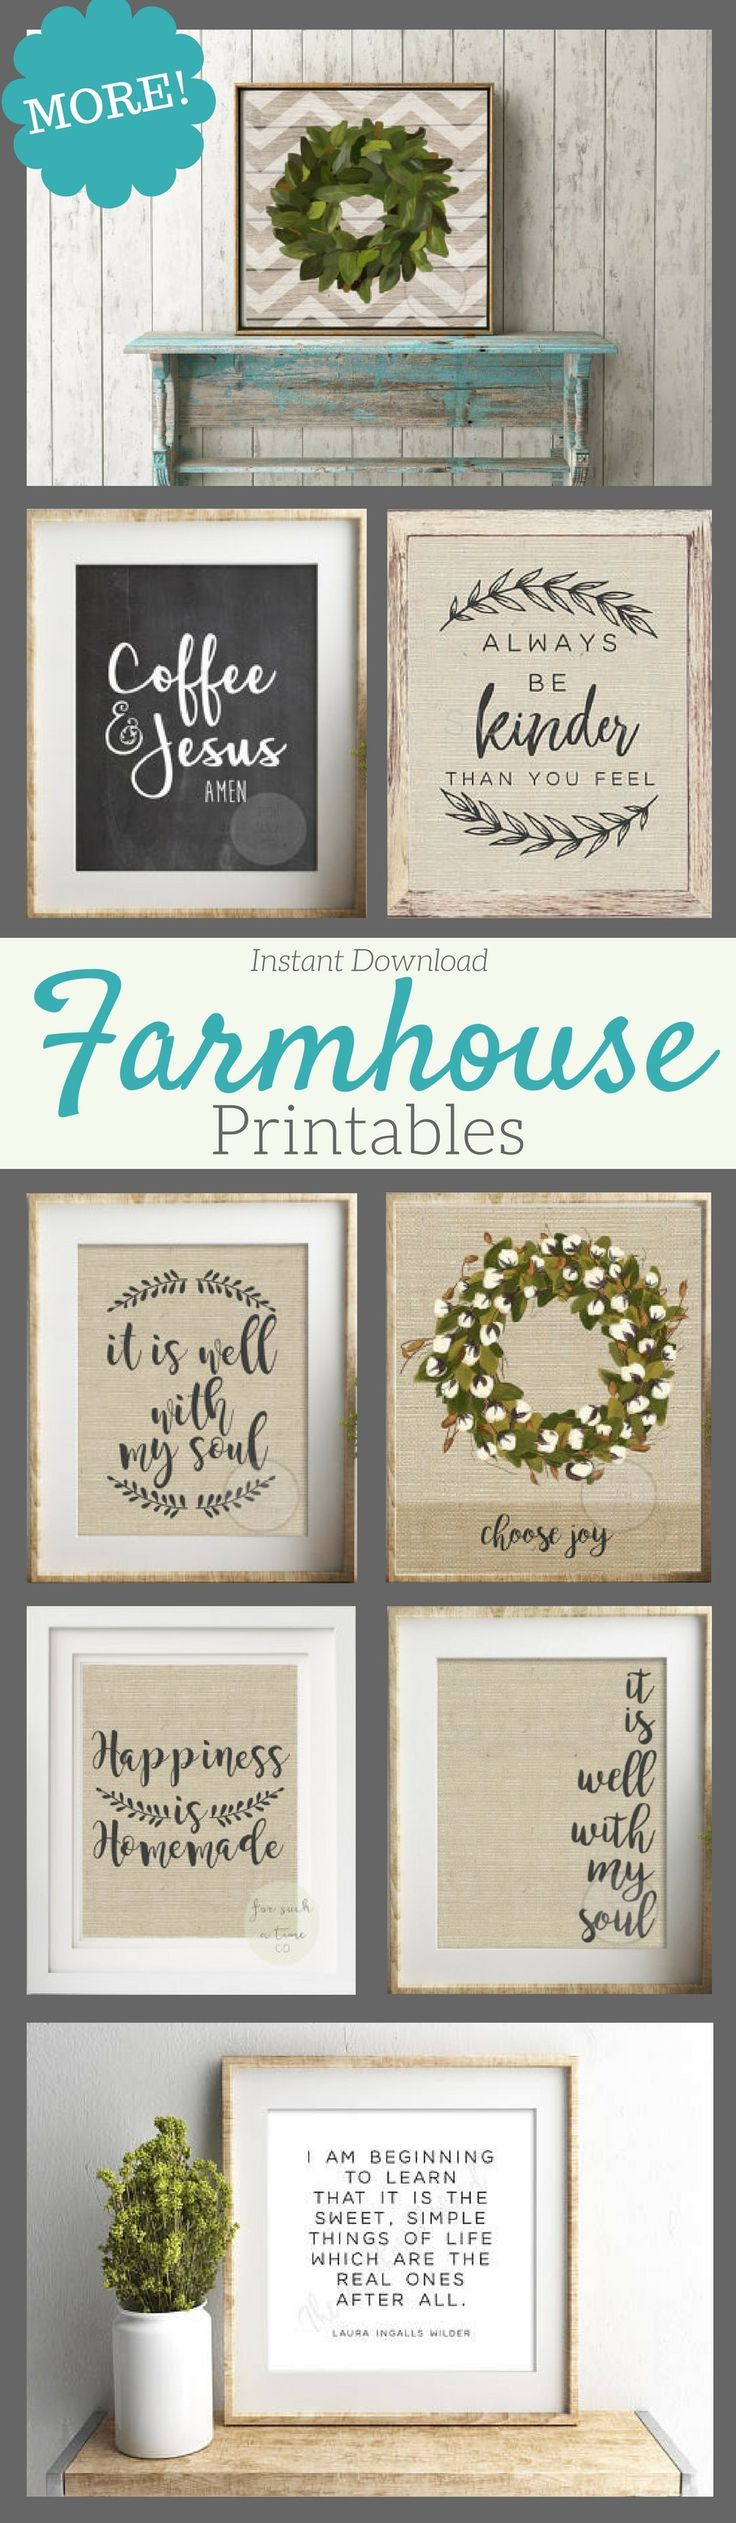 These Fixer Upper style prints would be Joanna Gaines approved! Perfect for a gallery wall or farmhouse kitchen! #farmhouse #printable #ad #gallerywall #artwork